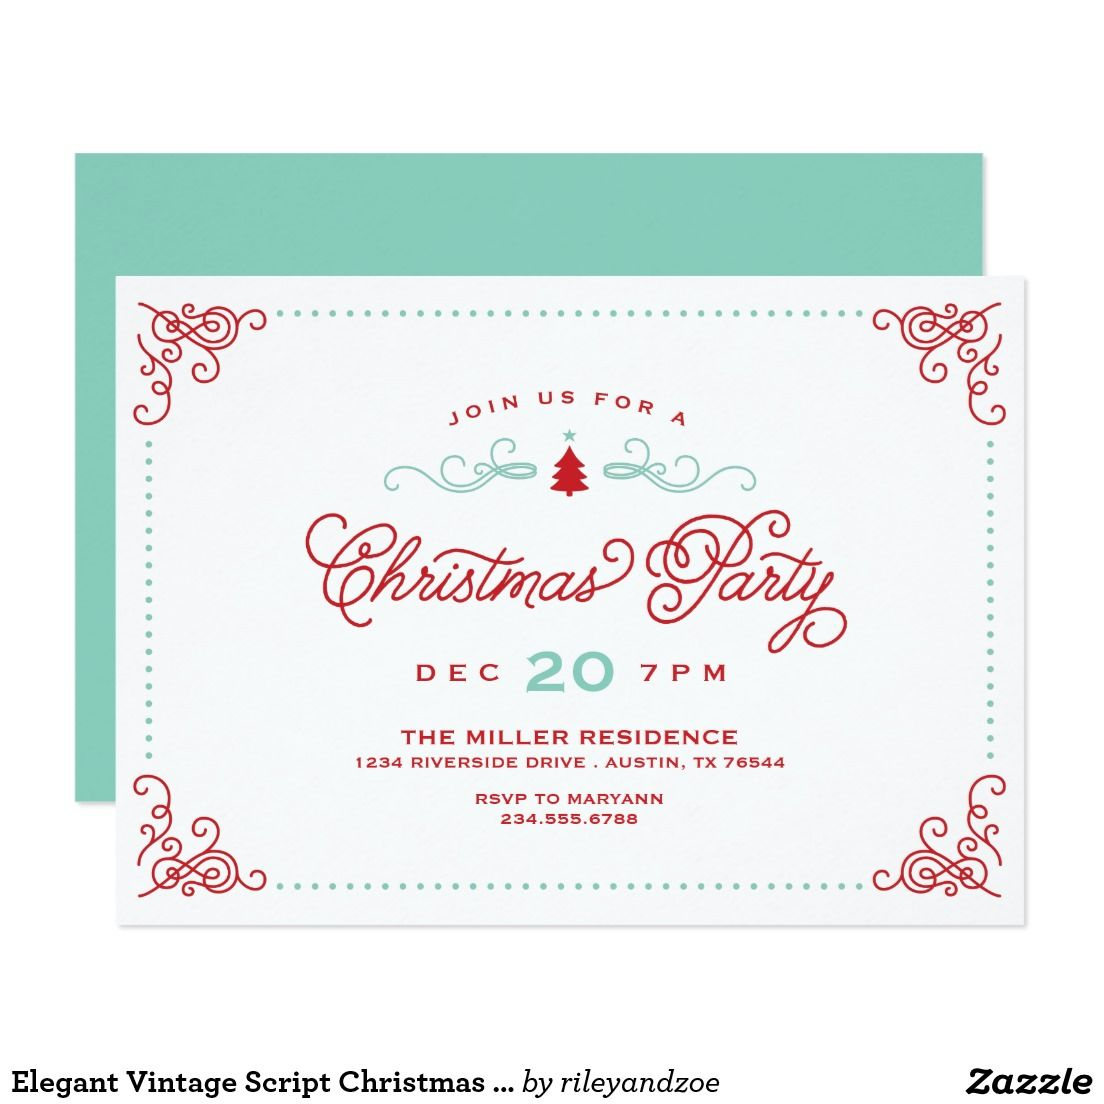 Elegant Vintage Script Christmas Party Card | Christmas Party ...